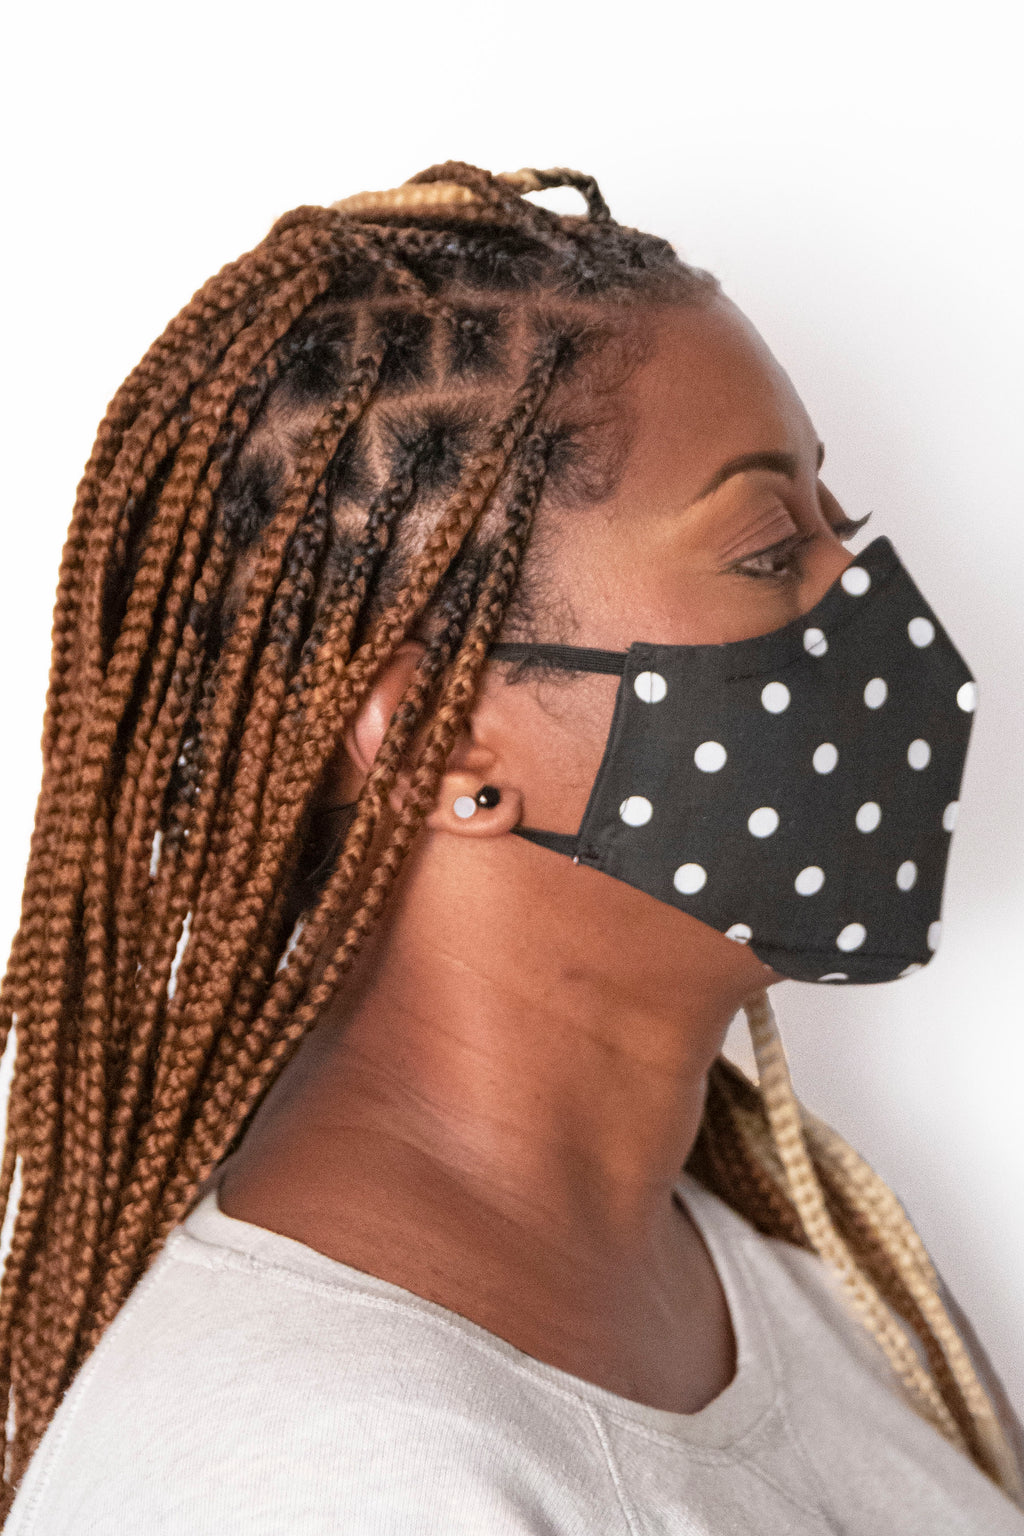 Polkadots Secure-Fit Face Mask - pacorogiene